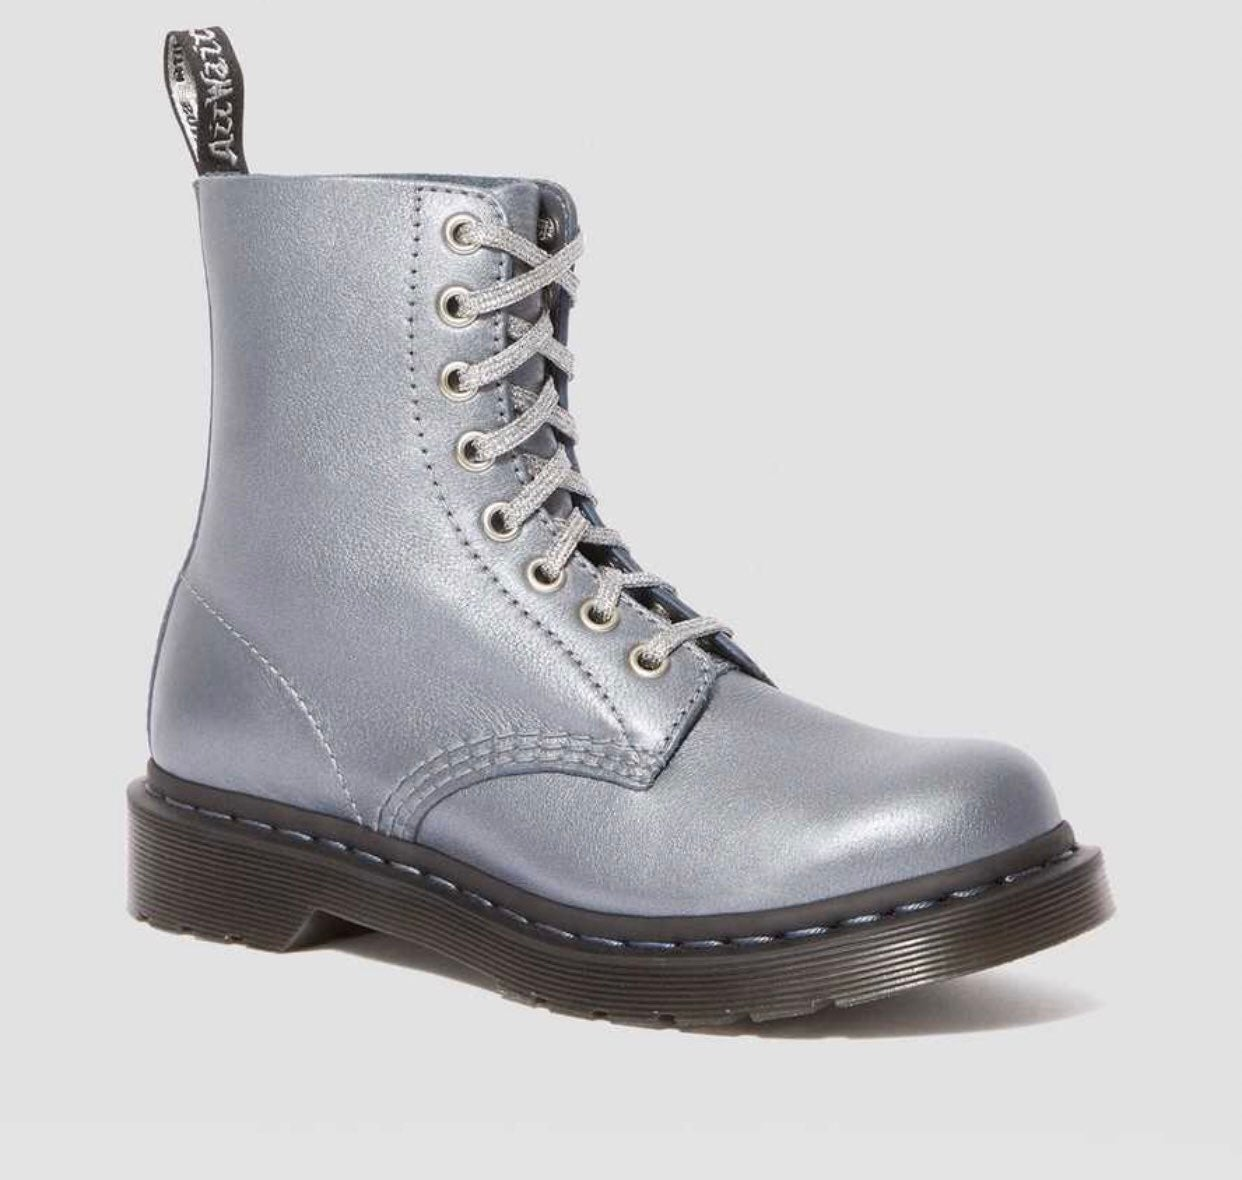 Dr. Martens Soft Leather Boots | Mercari